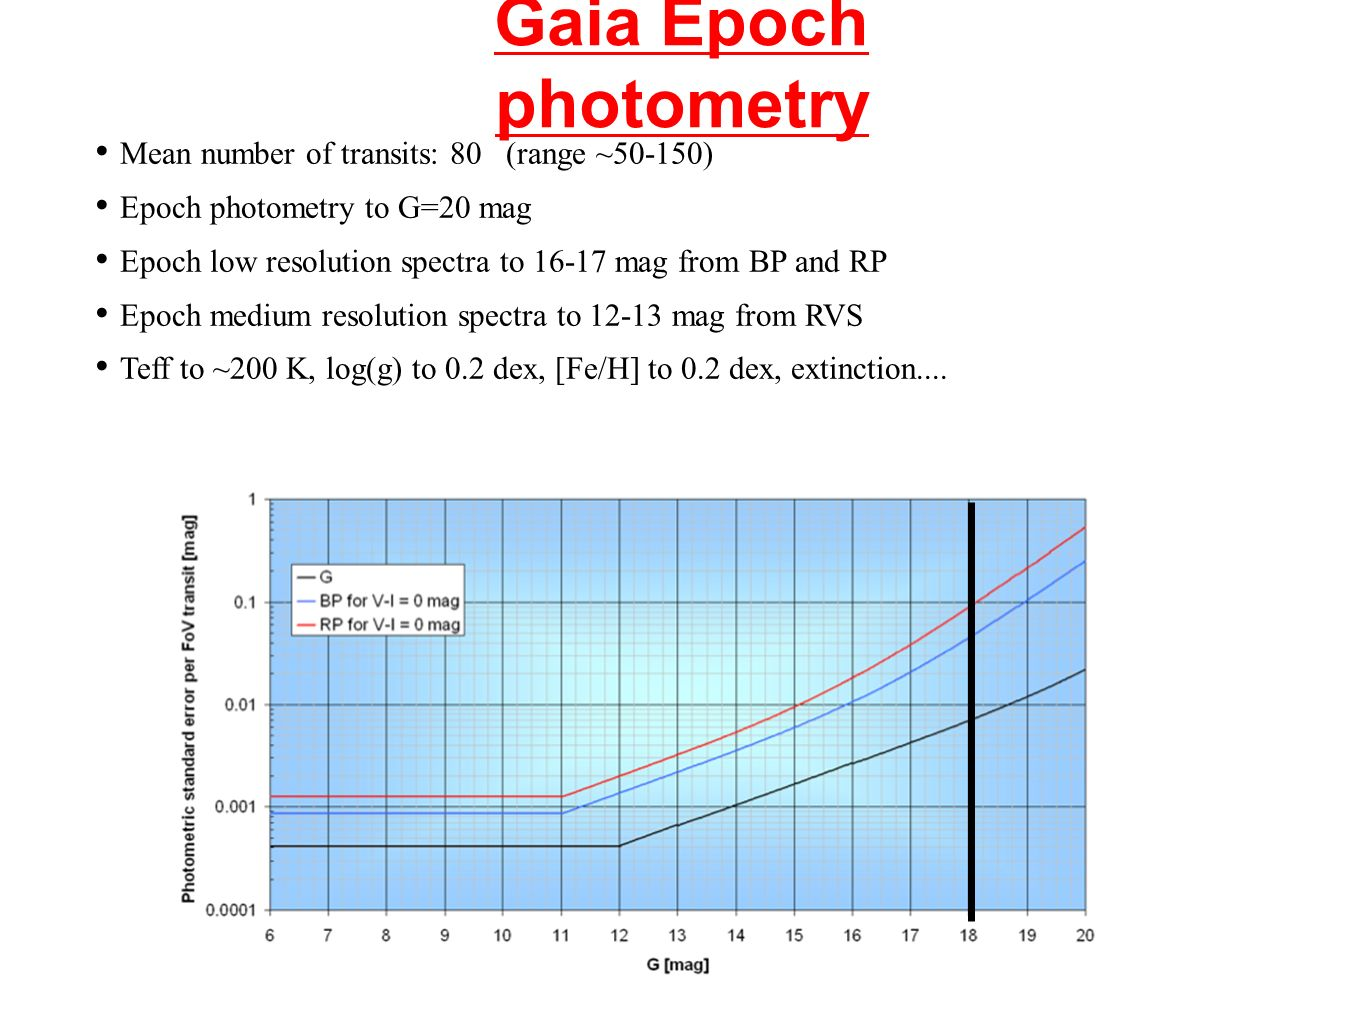 Gaia Epoch photometry Mean number of transits: 80 (range ~50-150) Epoch photometry to G=20 mag Epoch low resolution spectra to 16-17 mag from BP and RP Epoch medium resolution spectra to 12-13 mag from RVS Teff to ~200 K, log(g) to 0.2 dex, [Fe/H] to 0.2 dex, extinction....